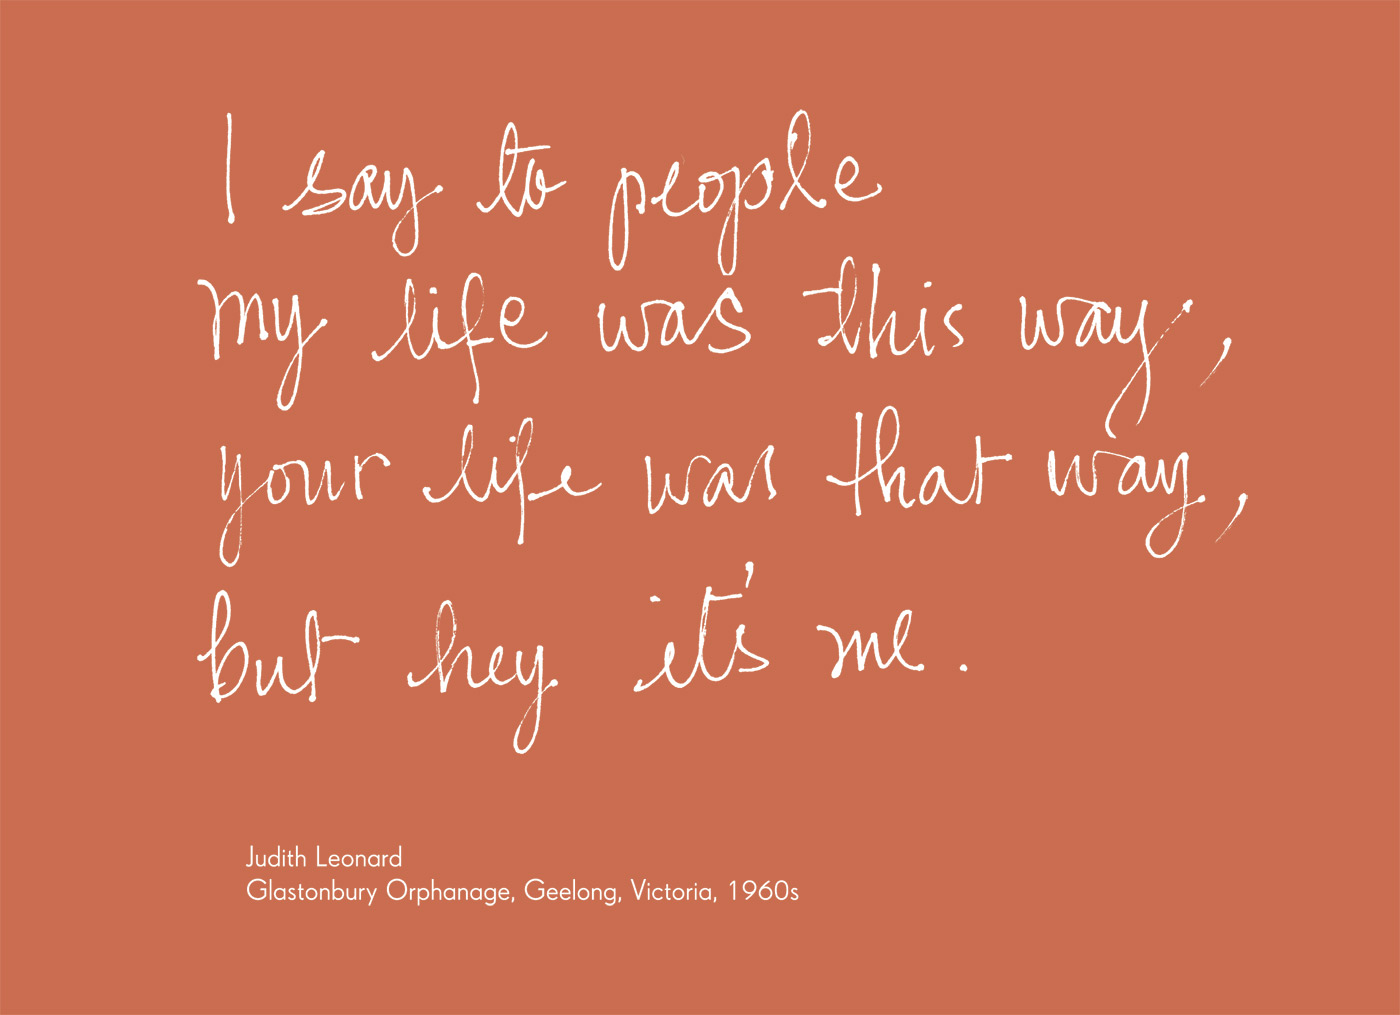 Exhibition graphic panel that reads: 'I say to people my life was this way, your life was that way, but hey it's me', attributed to 'Judith Leonard, Glastonbury Orphanage, Geelong, Victoria, 1960s'. - click to view larger image